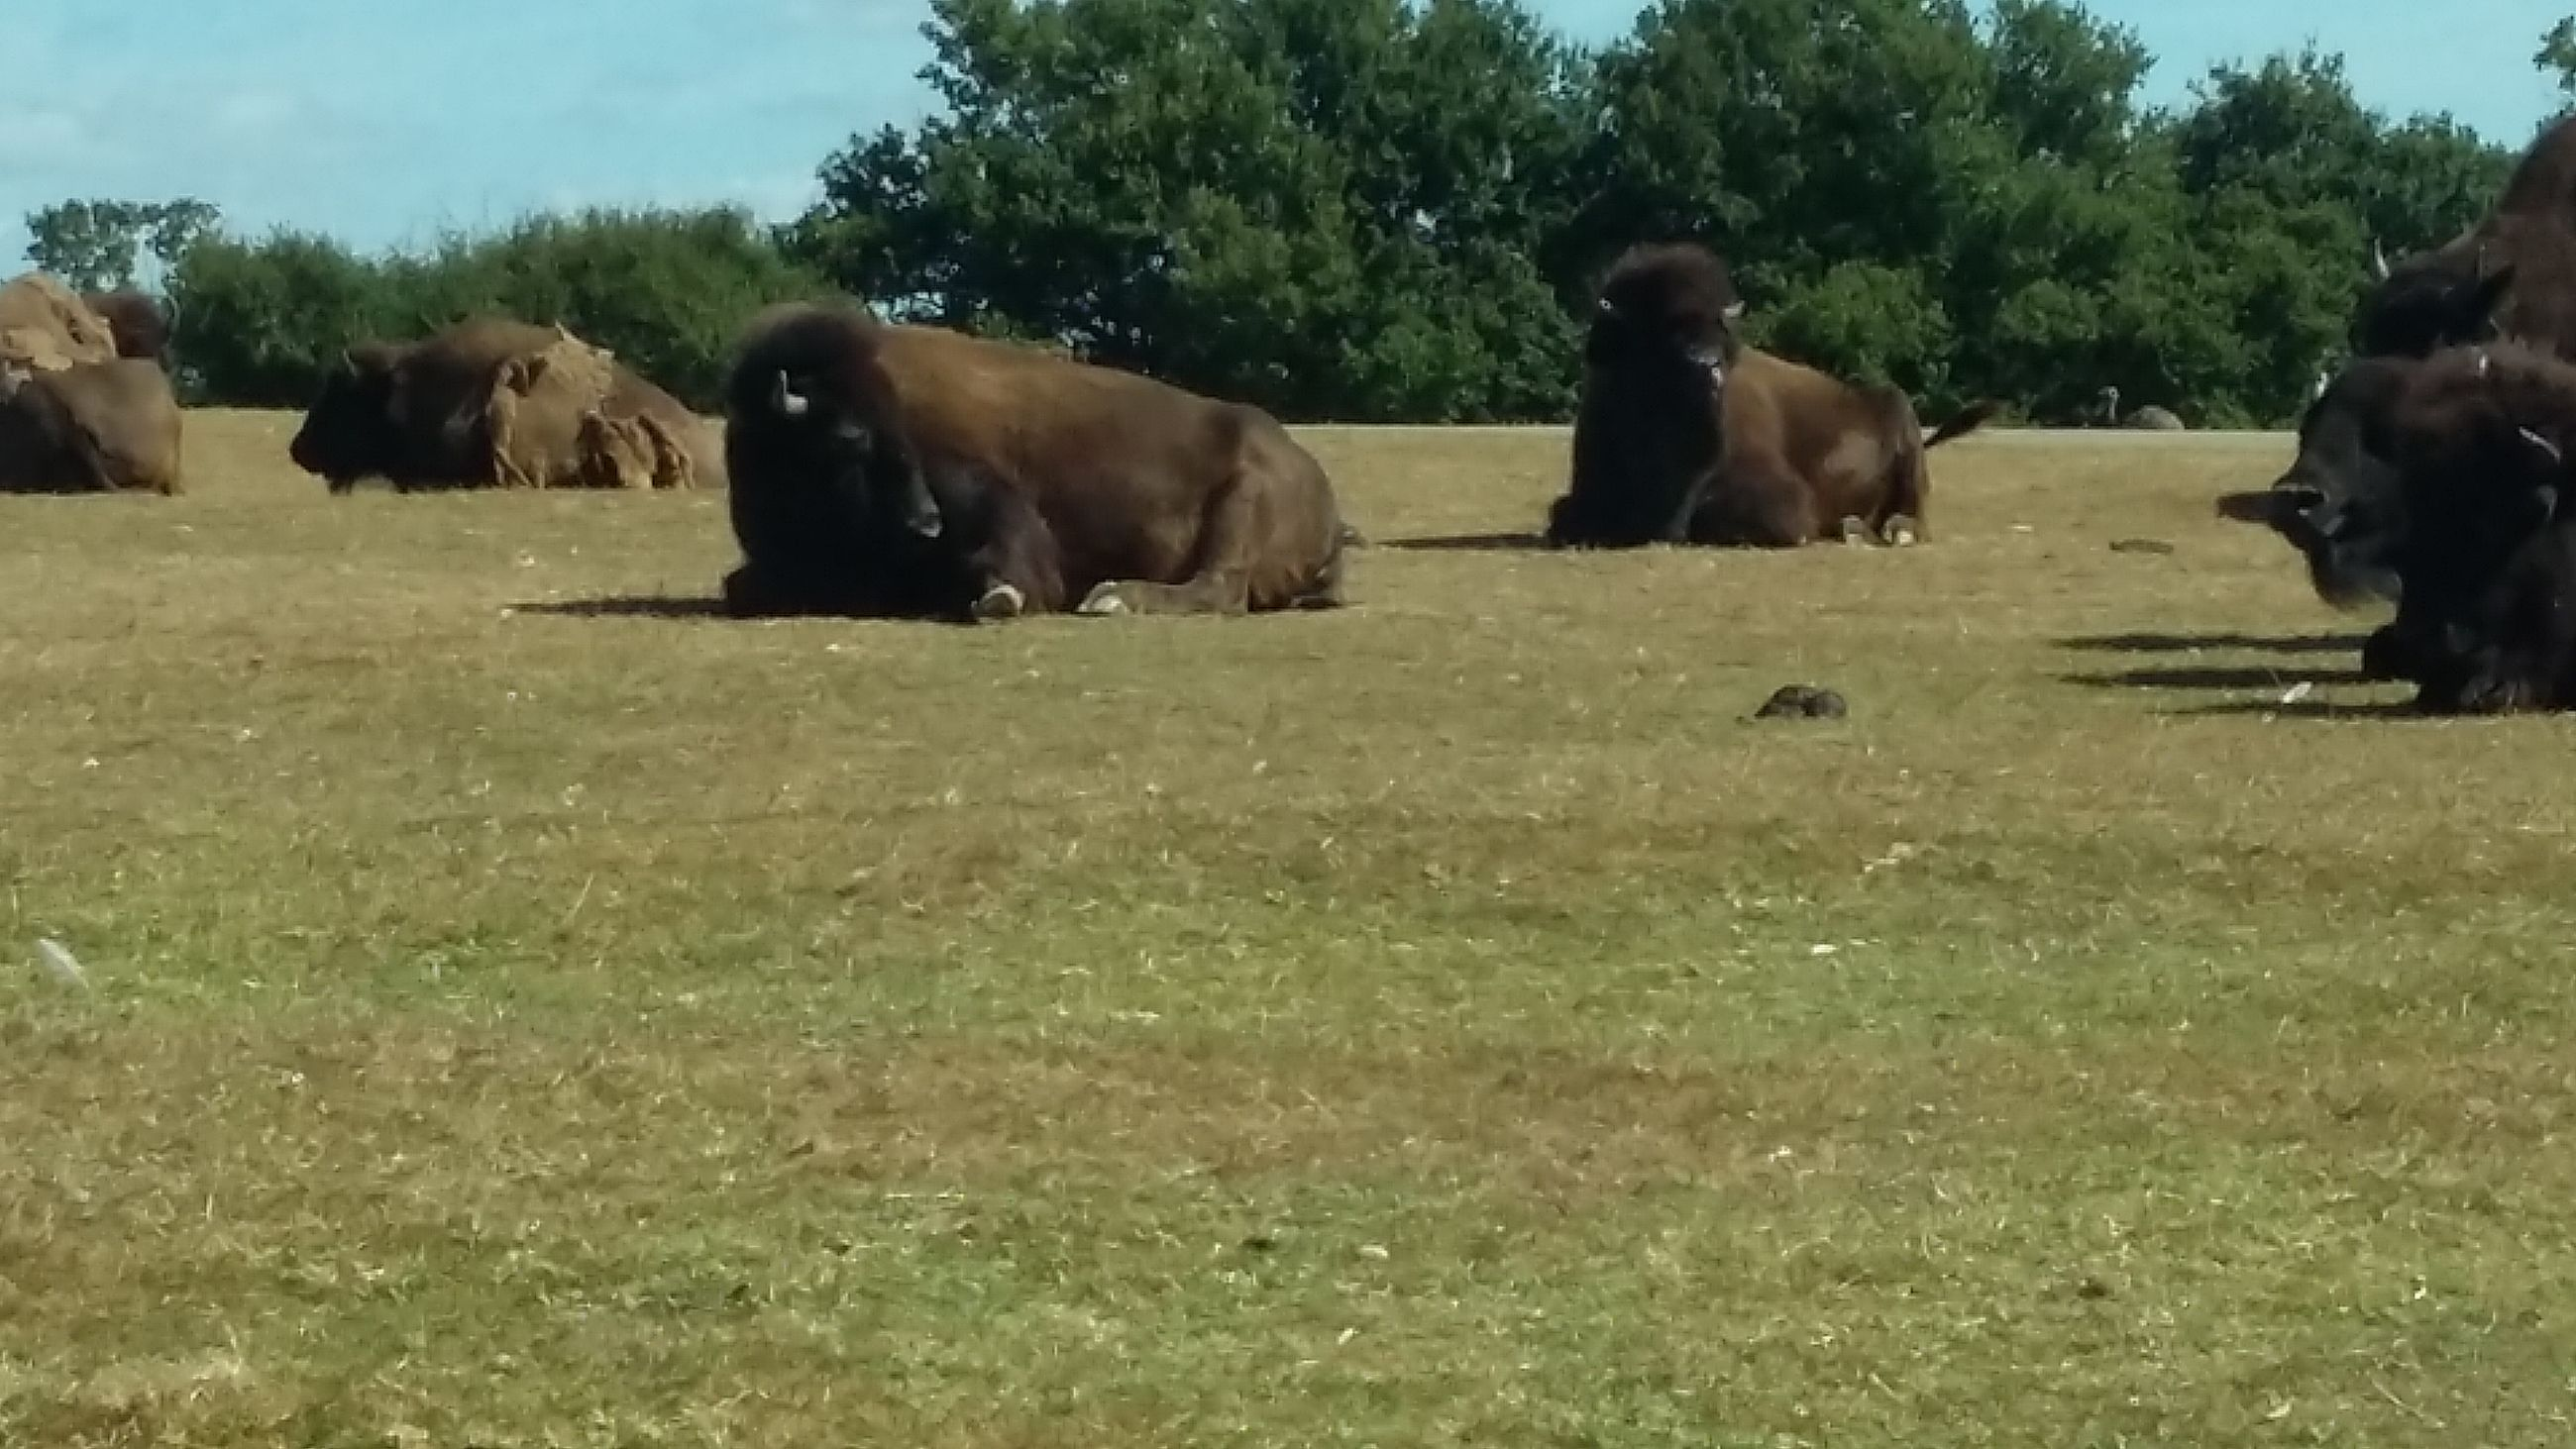 domestic animals, mammal, tree, one animal, side view, grass, dog, full length, livestock, surface level, casual clothing, herbivorous, outdoors, day, safari, domestic cattle, zoology, green color